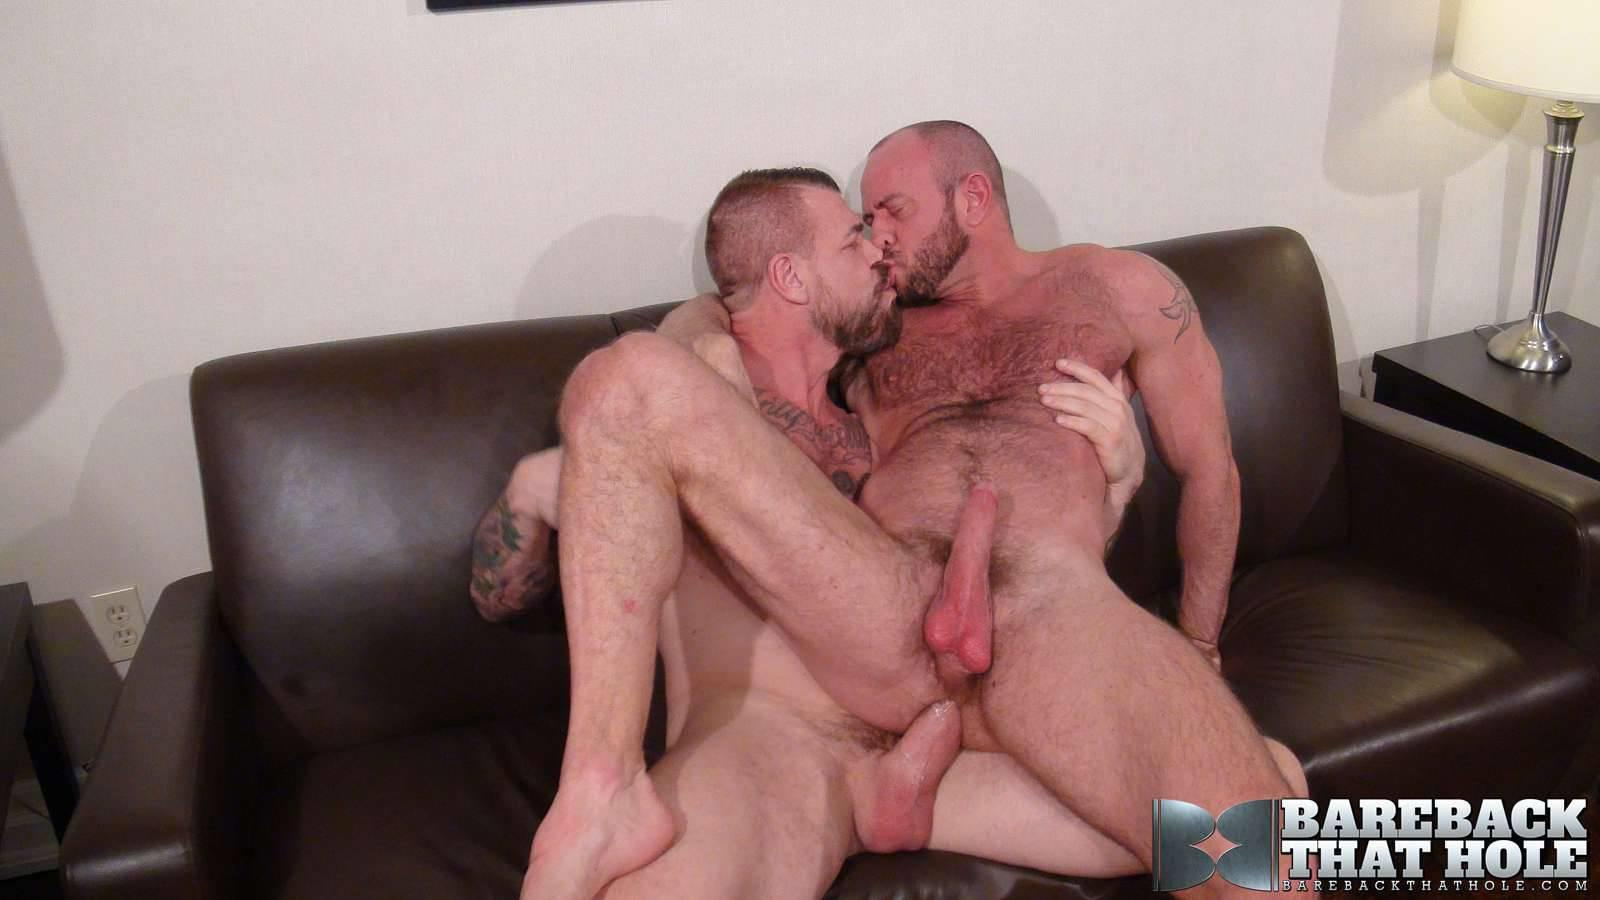 Bareback-That-Hole-Rocco-Steele-and-Matt-Stevens-Hairy-Muscle-Daddy-Bareback-Amateur-Gay-Porn-16 Hairy Muscle Daddy Rocco Steele Breeding Matt Stevens